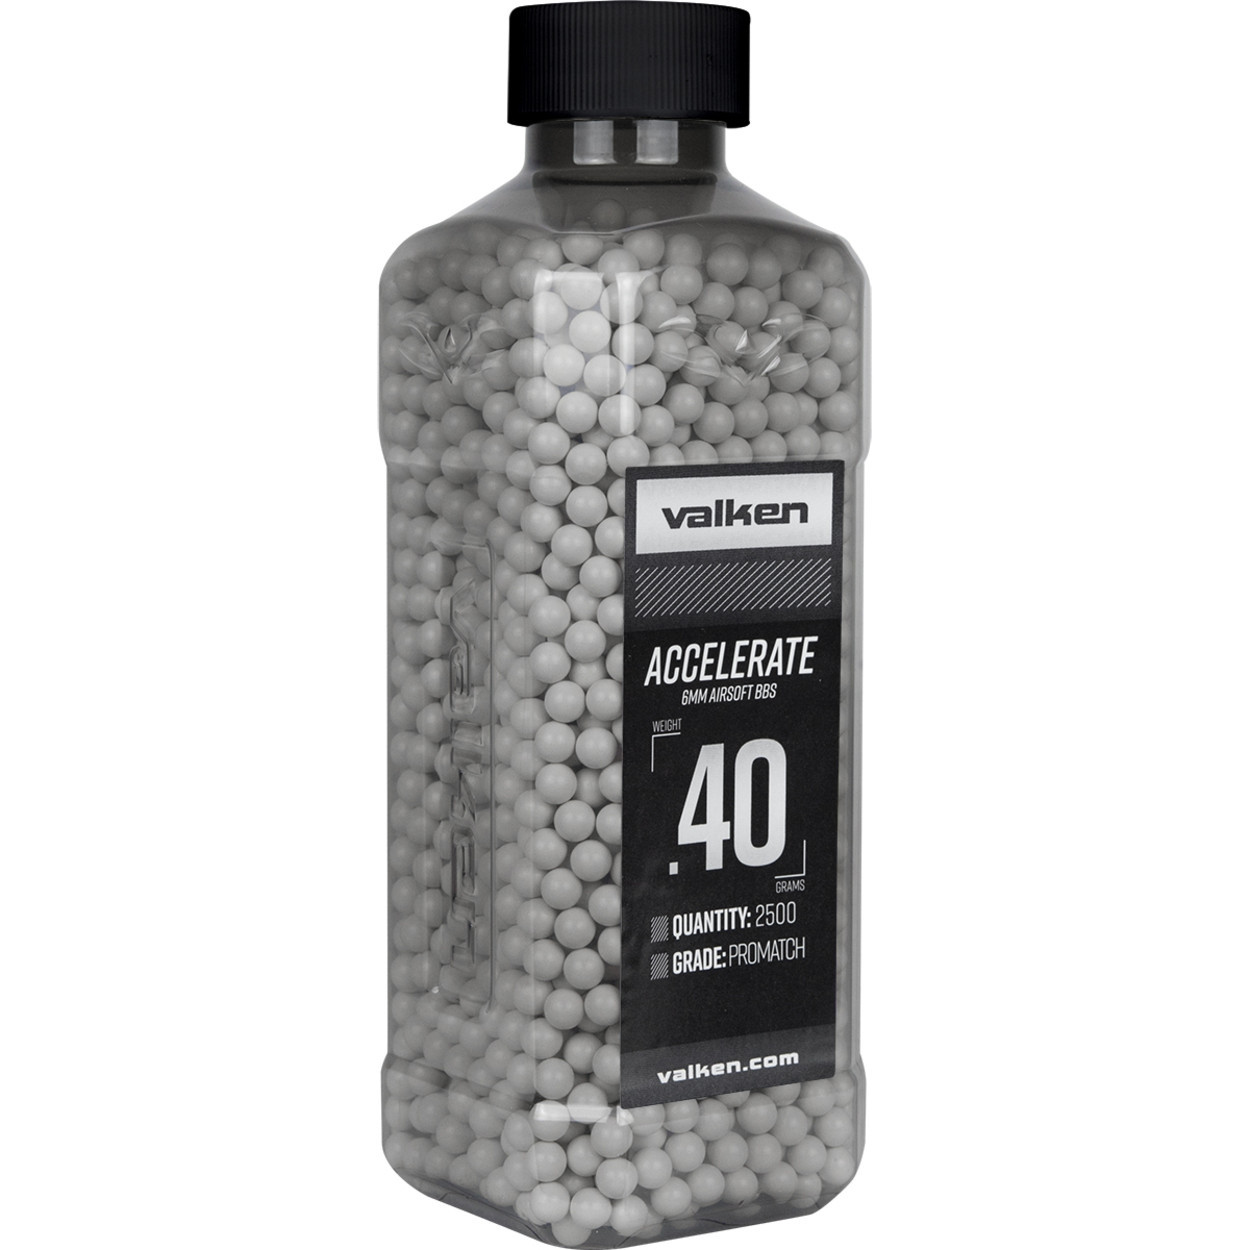 Valken Airsoft 0.40g Accelerate 6mm BB (2500qty) - White/Grey